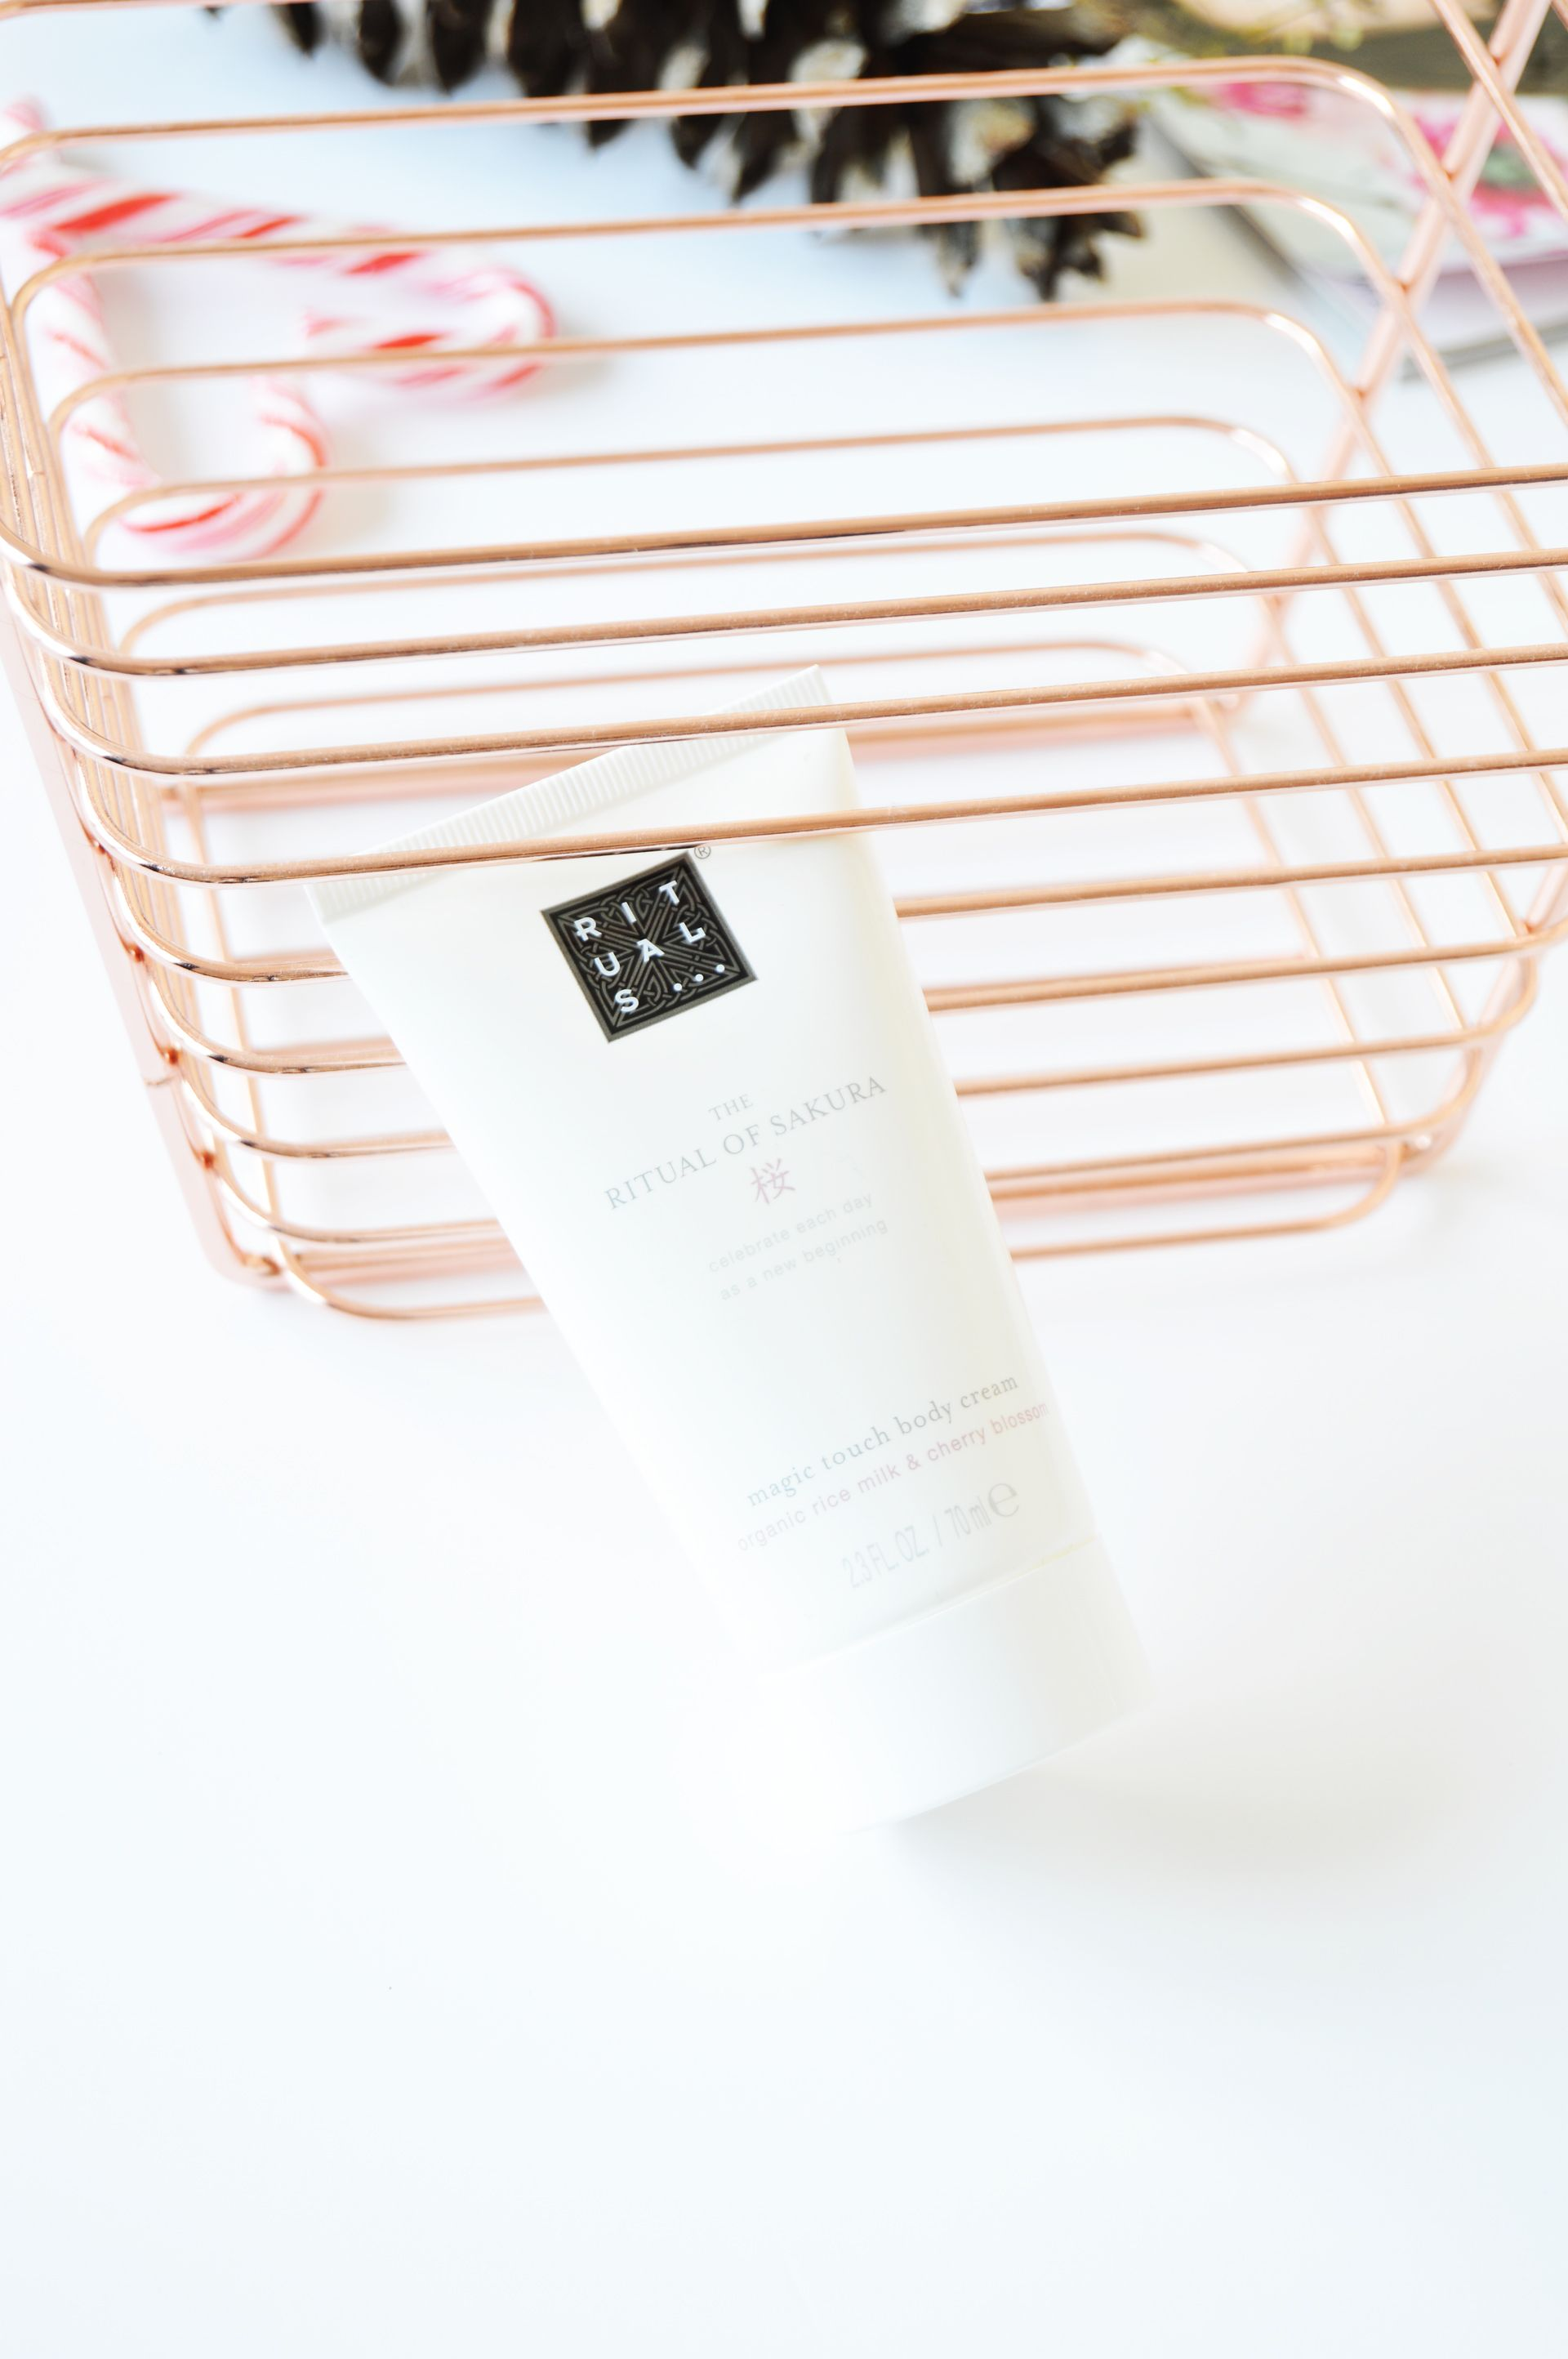 Rituals The Ritual of Sakura Body Cream is for the new beginnings everyday. It has lightweight formula and the skin absorbs it straight away. Floral scent will linger around for a long time, you could even skip perfume.